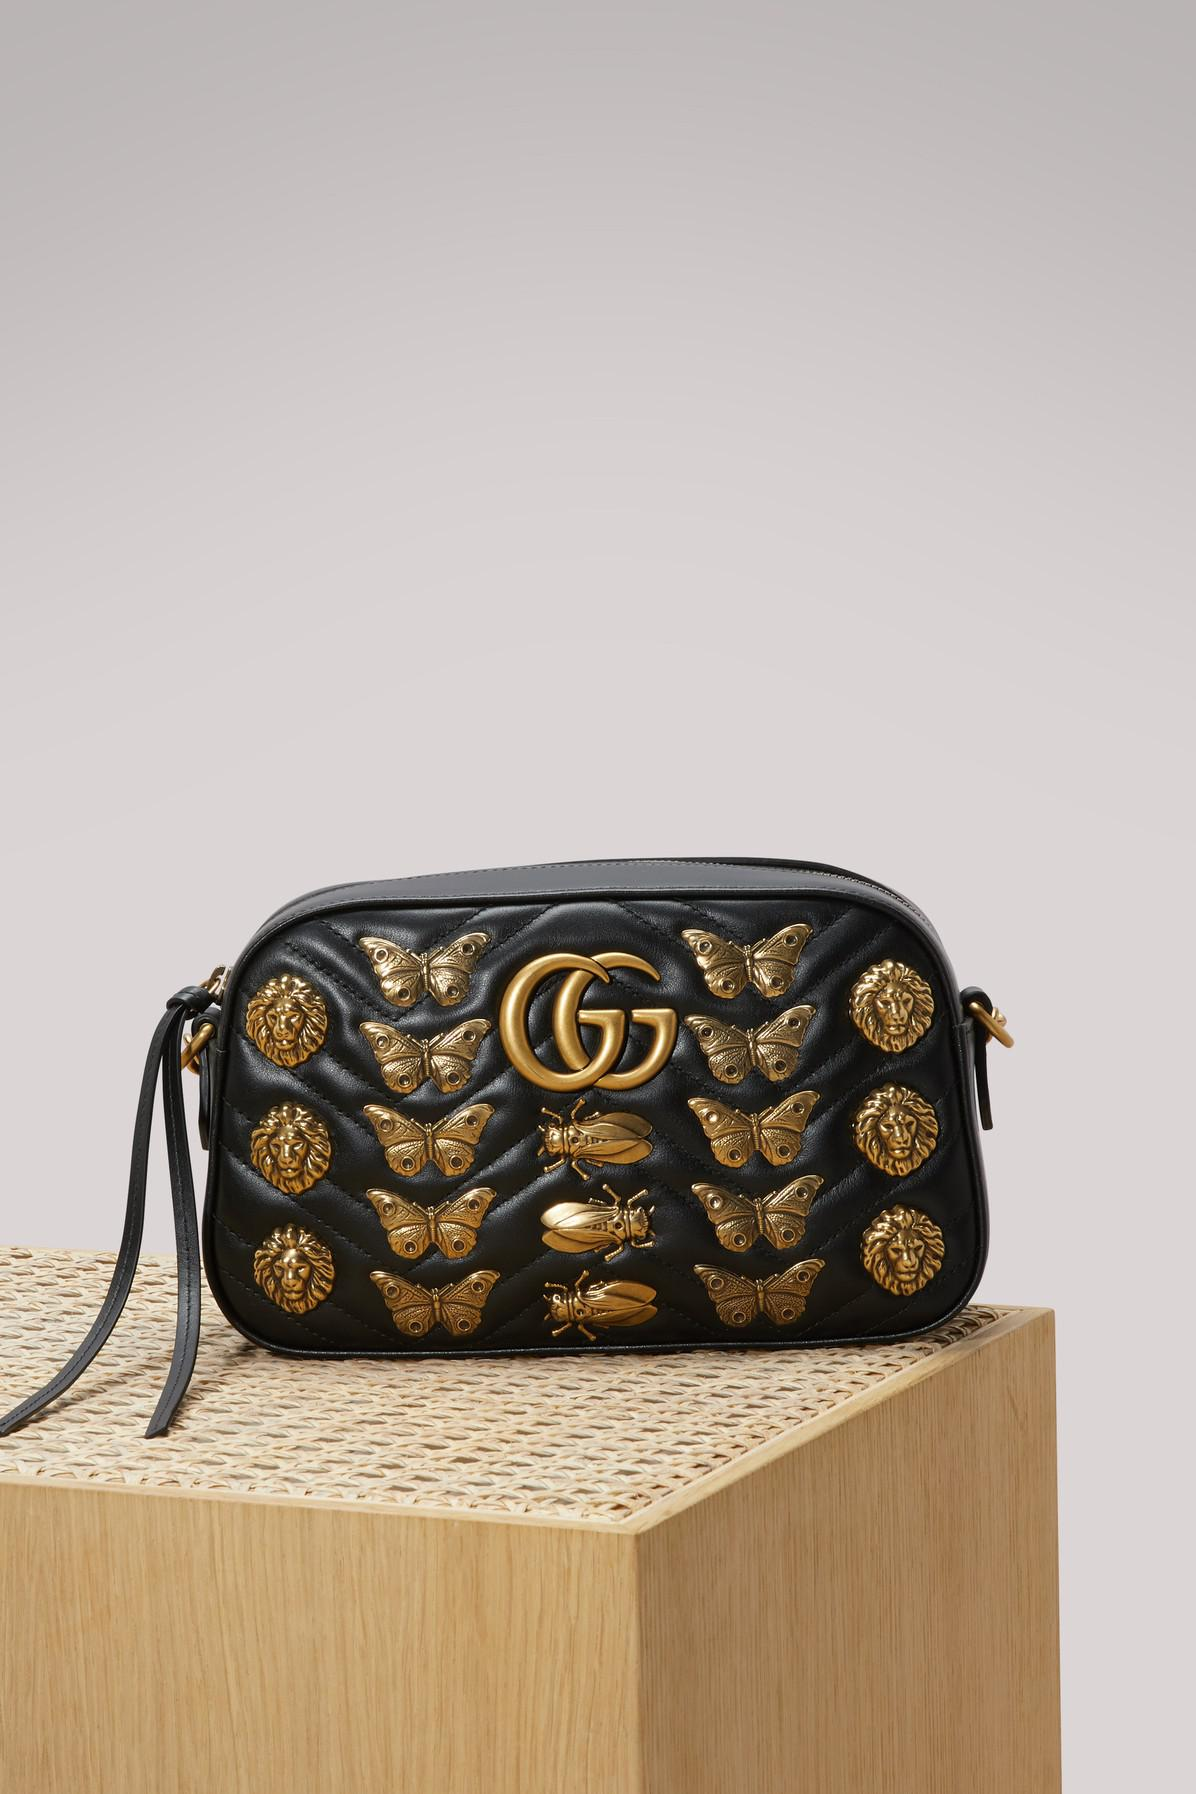 d1f271f16a6d Gucci Gg Marmont Animal Studs Shoulder Bag in Black - Lyst